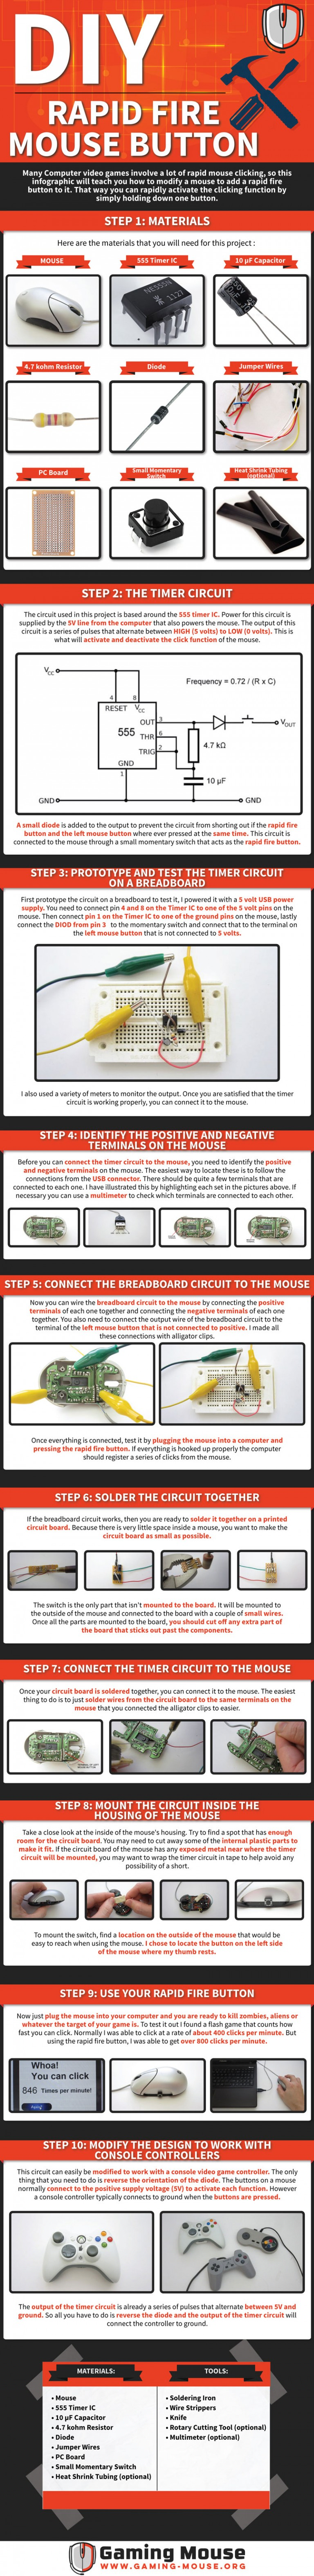 DIY Rapid Fire Mouse Button - Infographic